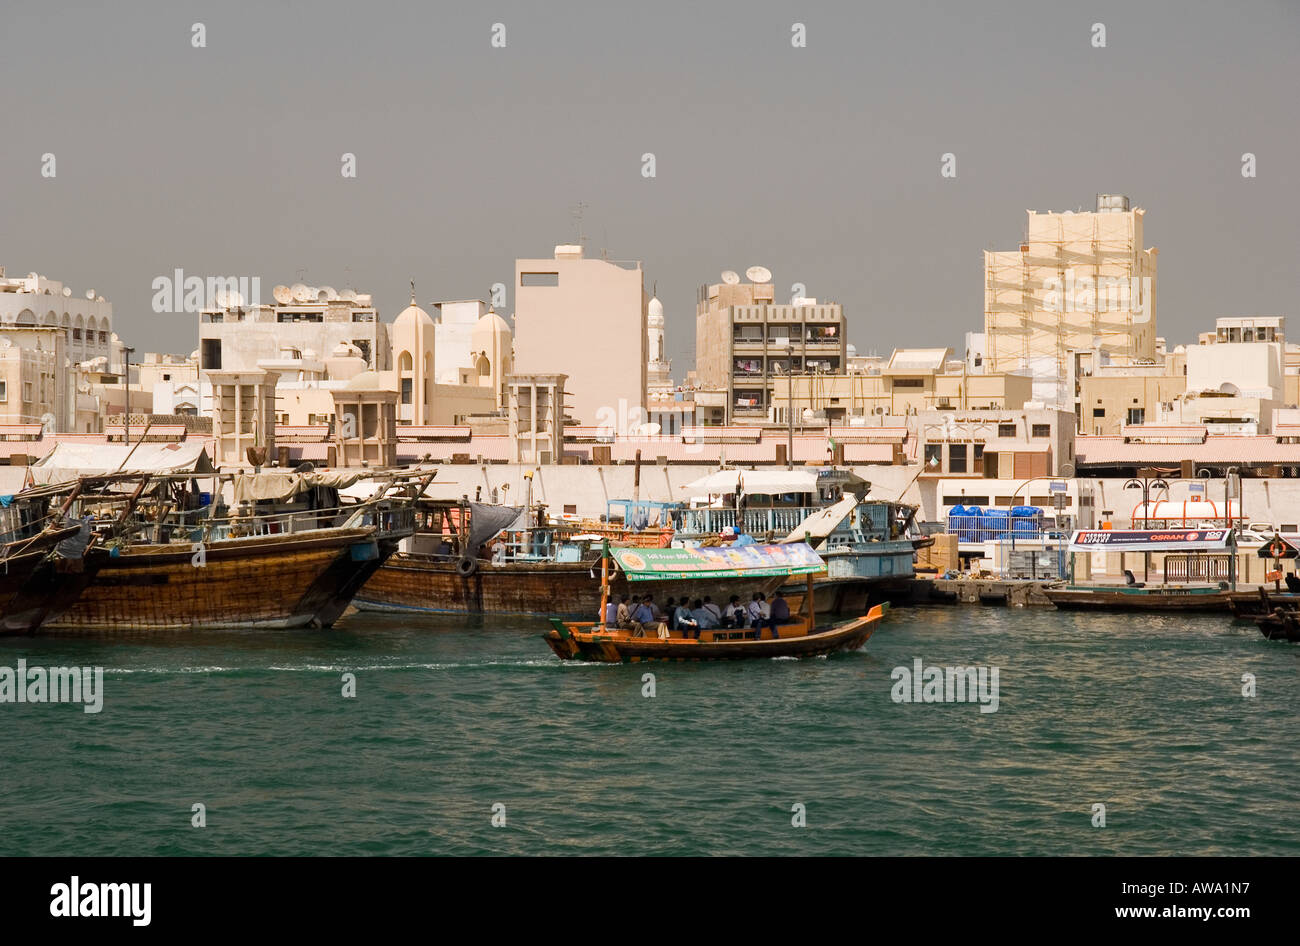 Deira shown from the Creek in Dubai, UAE. With small passenger ferry boats - abras, and the medium-sized freight carrying boats. - Stock Image